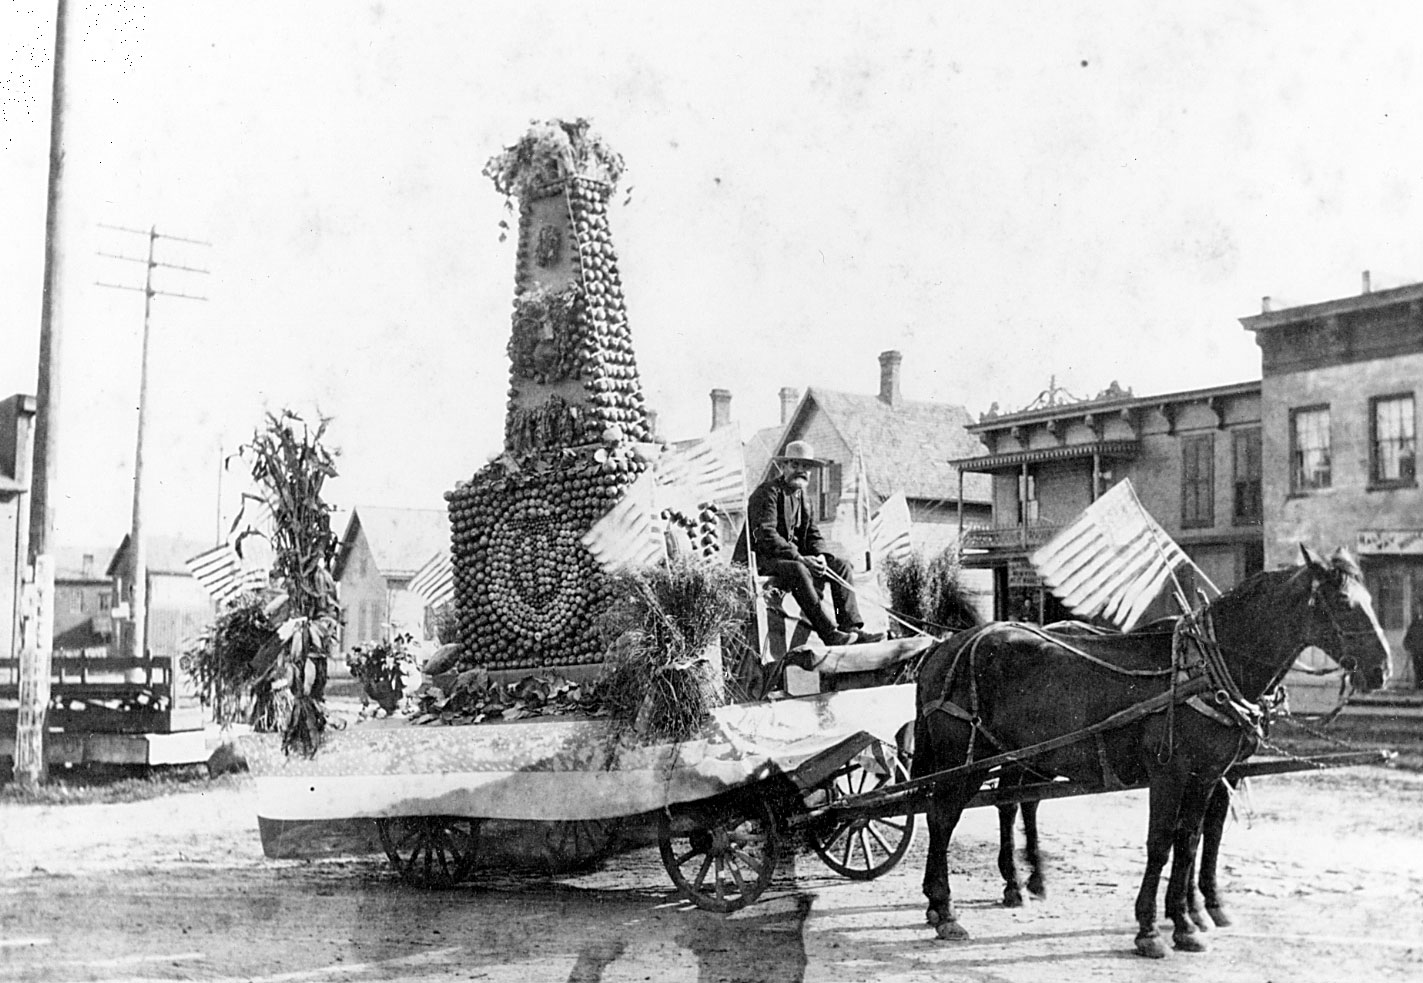 Parade float, 1895 image